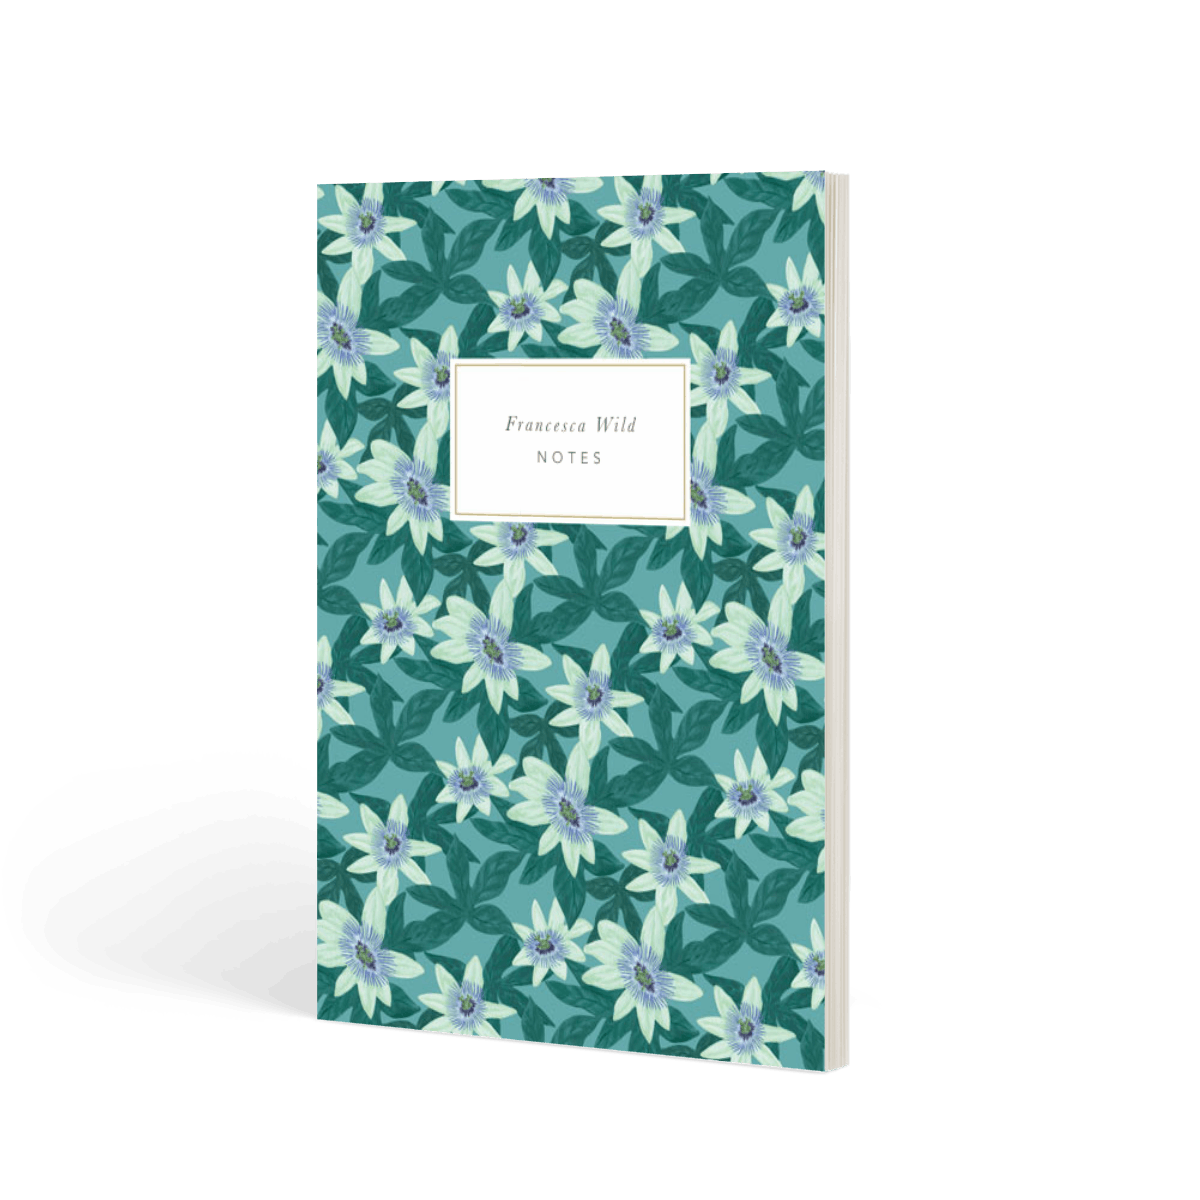 Https%3a%2f%2fwww.papier.com%2fproduct image%2f20830%2f6%2fpassion flower green 5317 front 1570306487.png?ixlib=rb 1.1